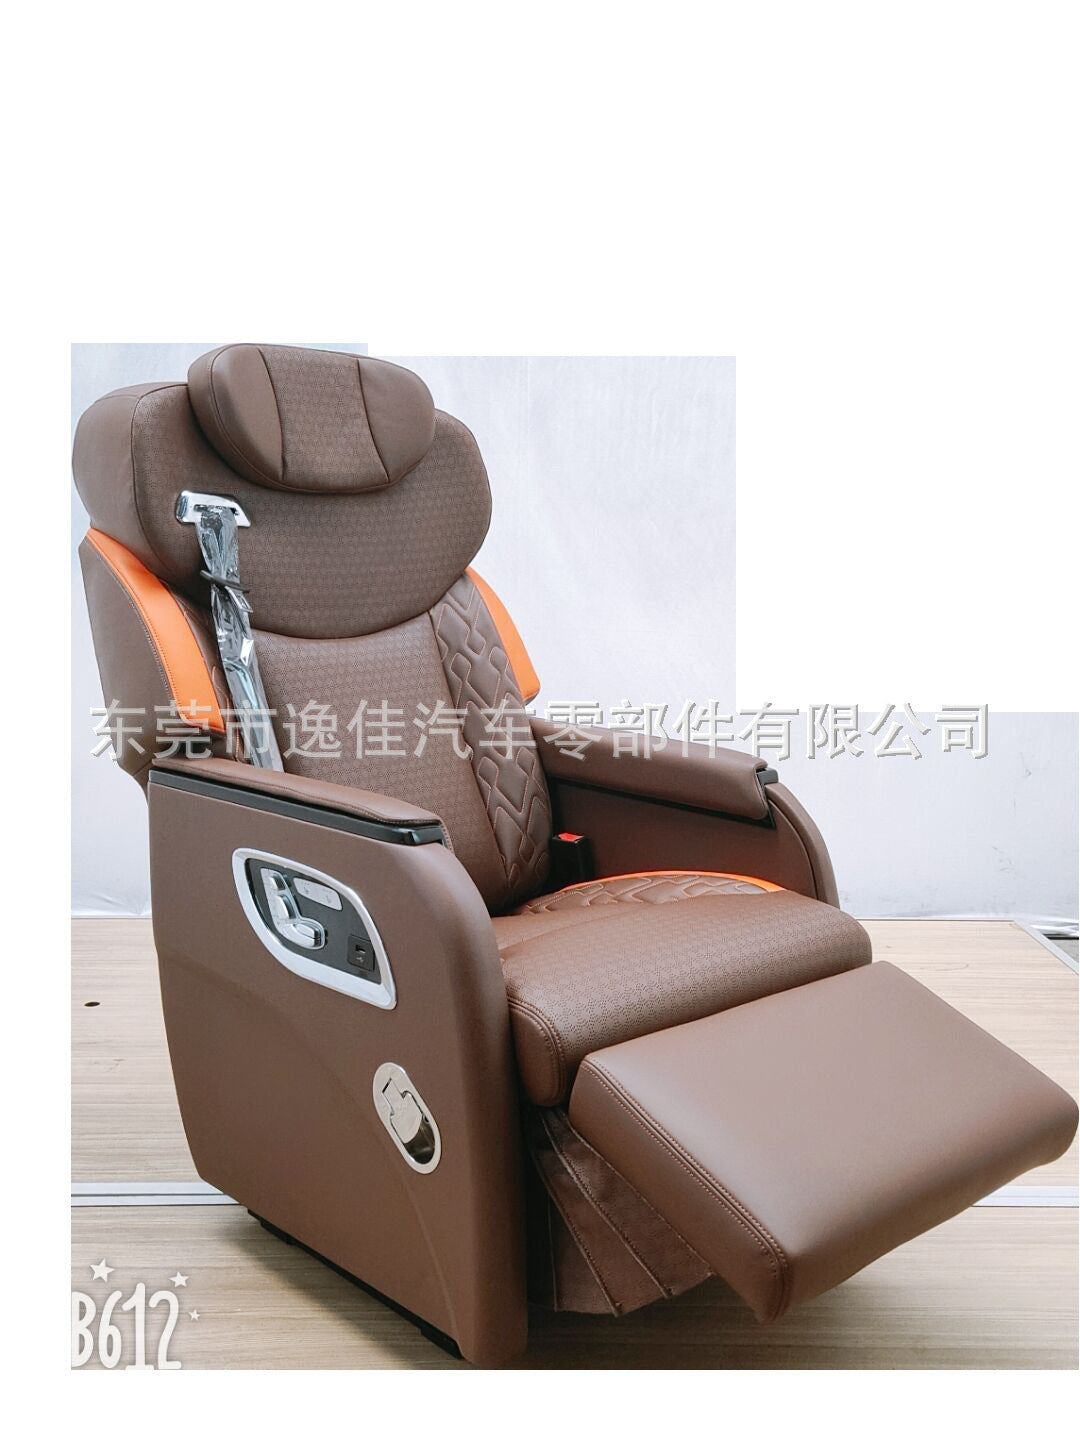 High-end commercial vehicle seat design custom car seat smart seat VIP restaurant seat wheel chair